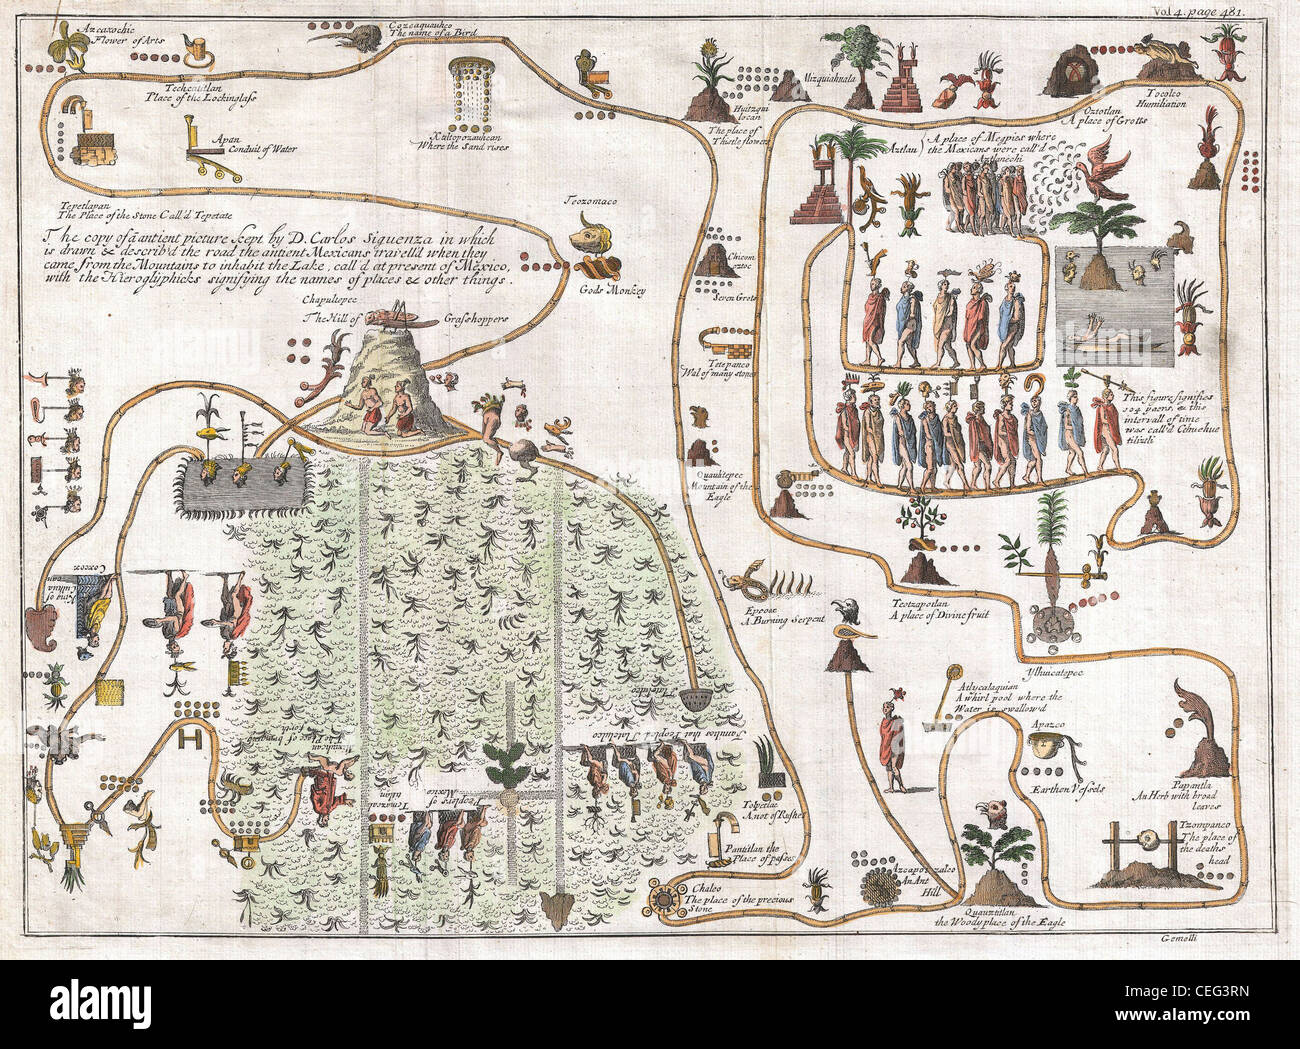 1704 Gemelli Map of the Aztec Migration from Aztlan to Chapultapec - Stock Image